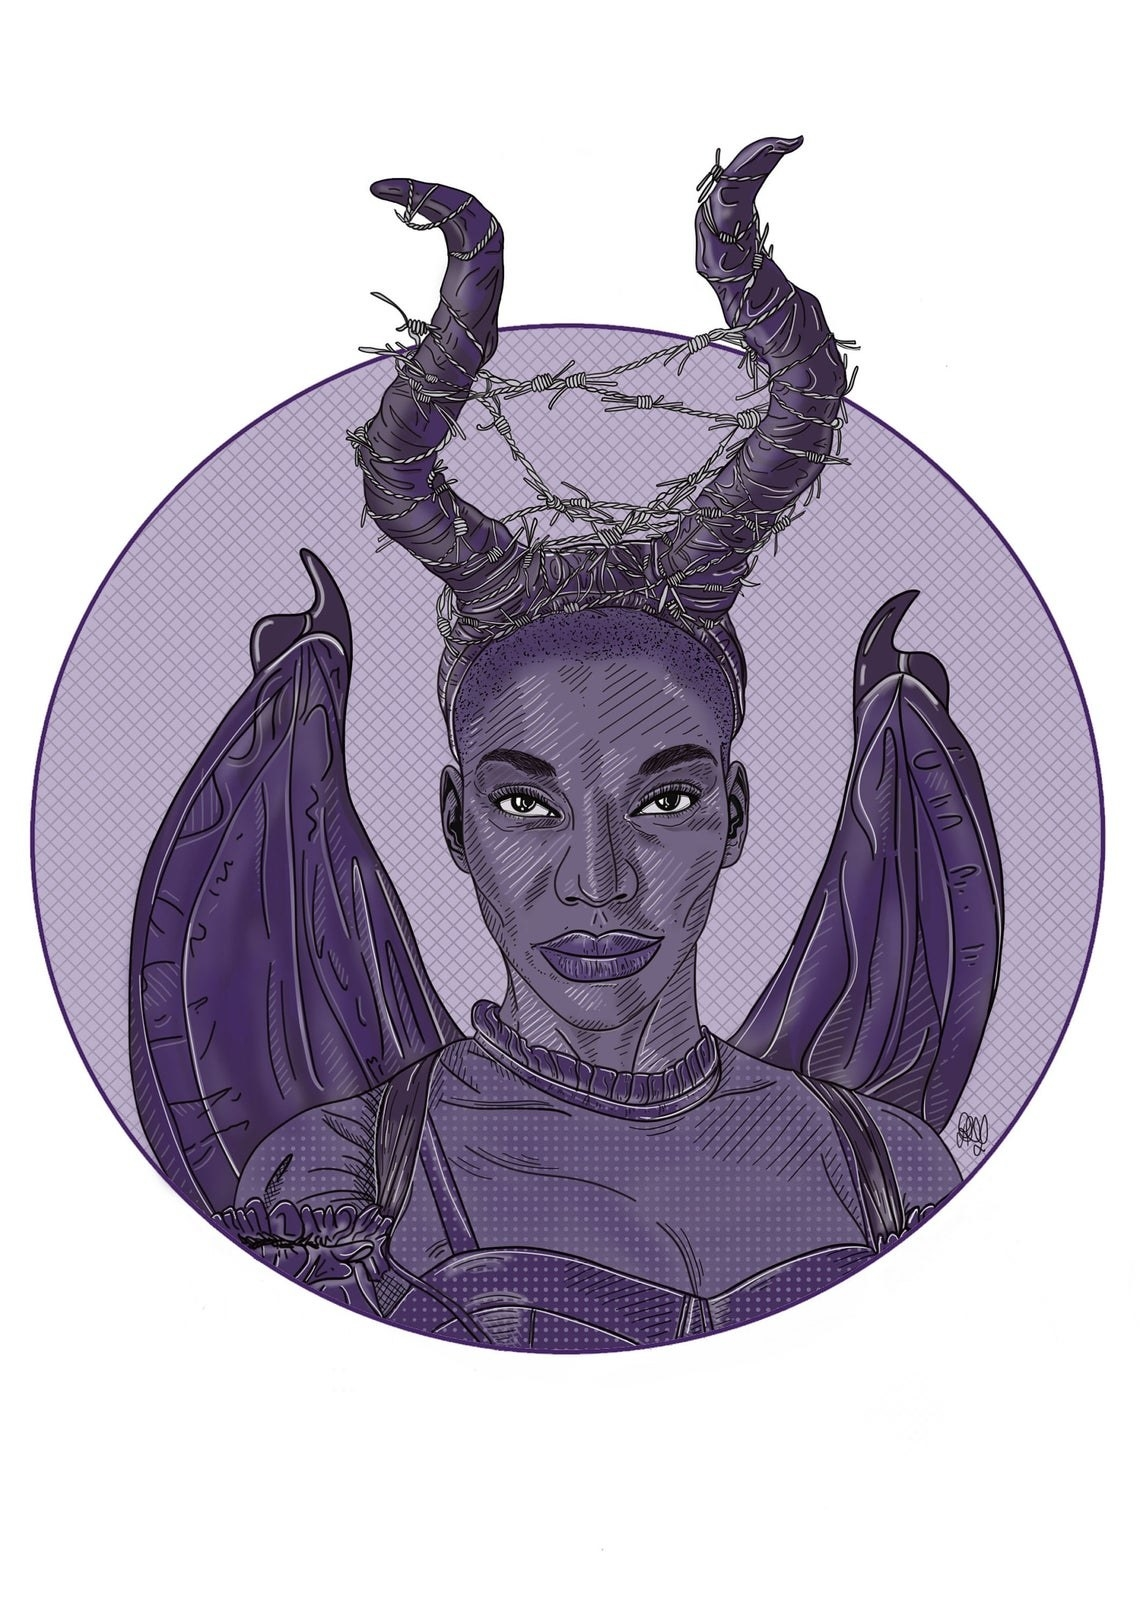 A hand drawn image of Arabella from I May Destroy You wearing devil horns and wings for Halloween